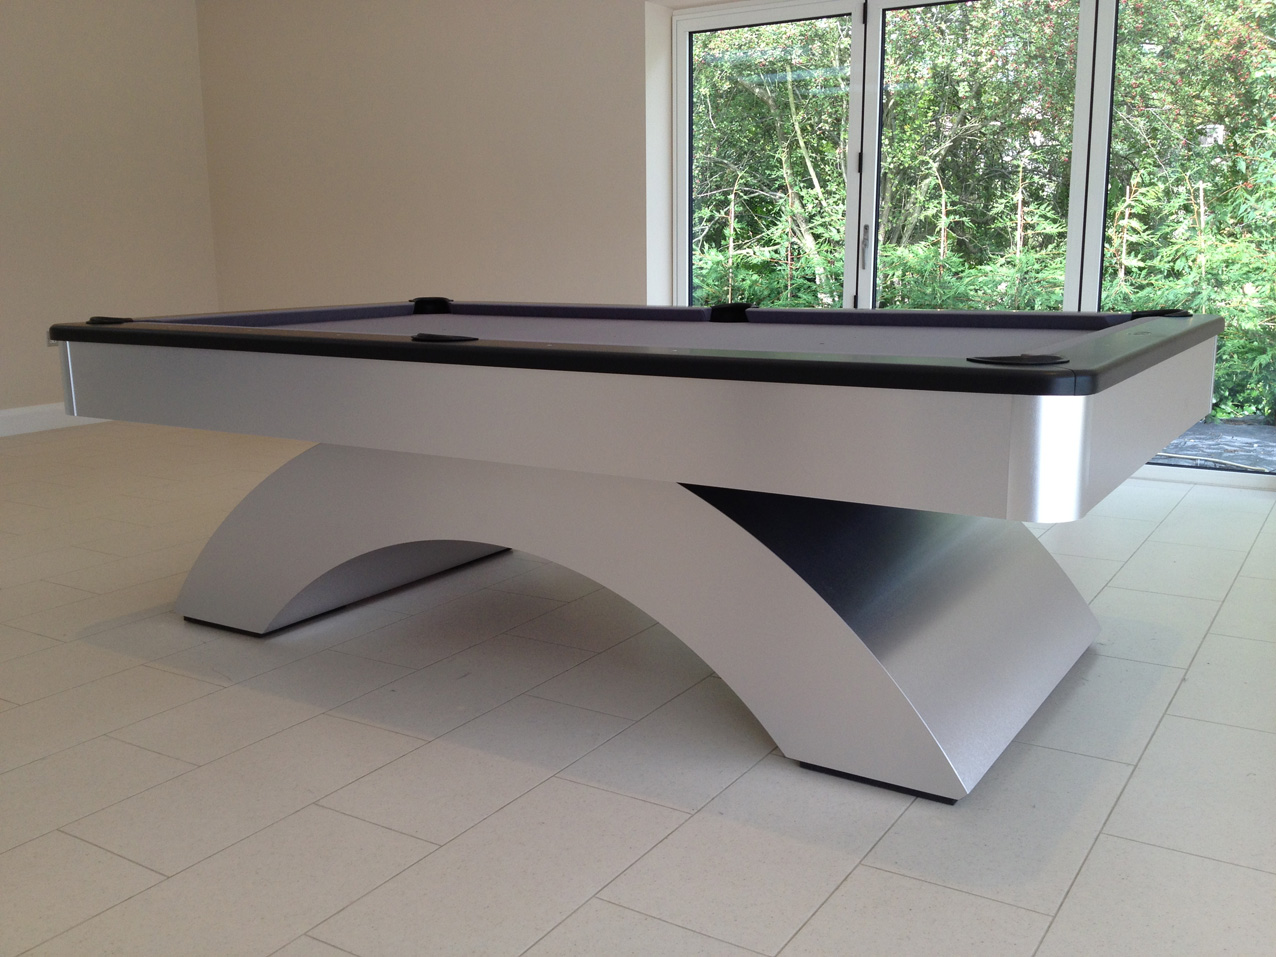 Olhausen Waterfall Pool Table Brushed Aluminium Grey Cloth